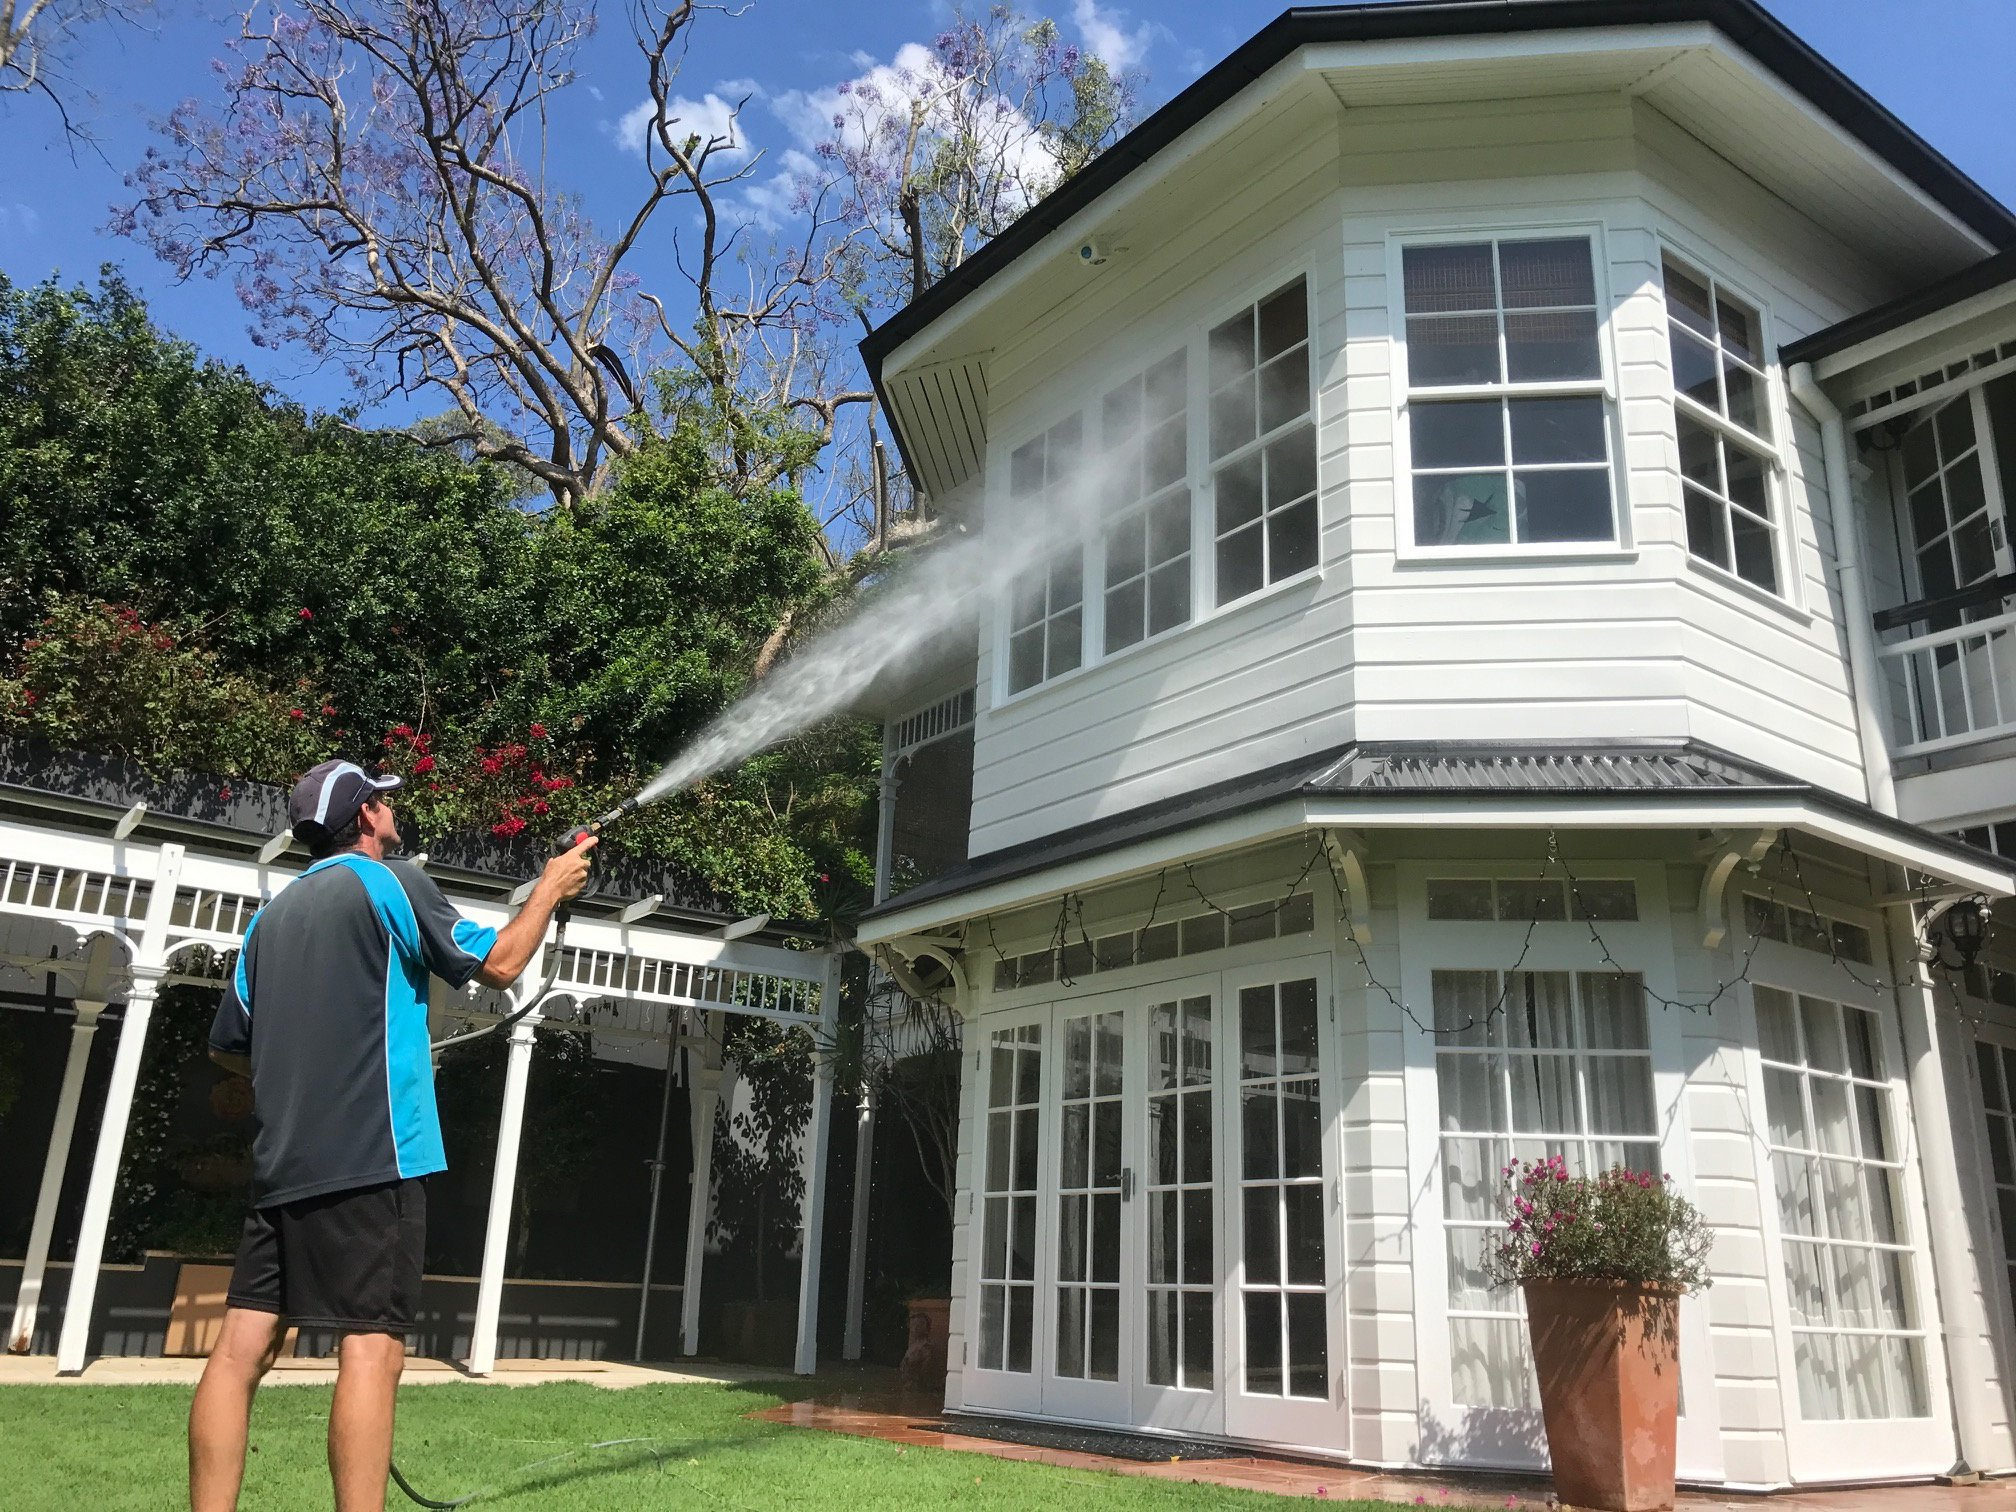 Coolum Roof washing services